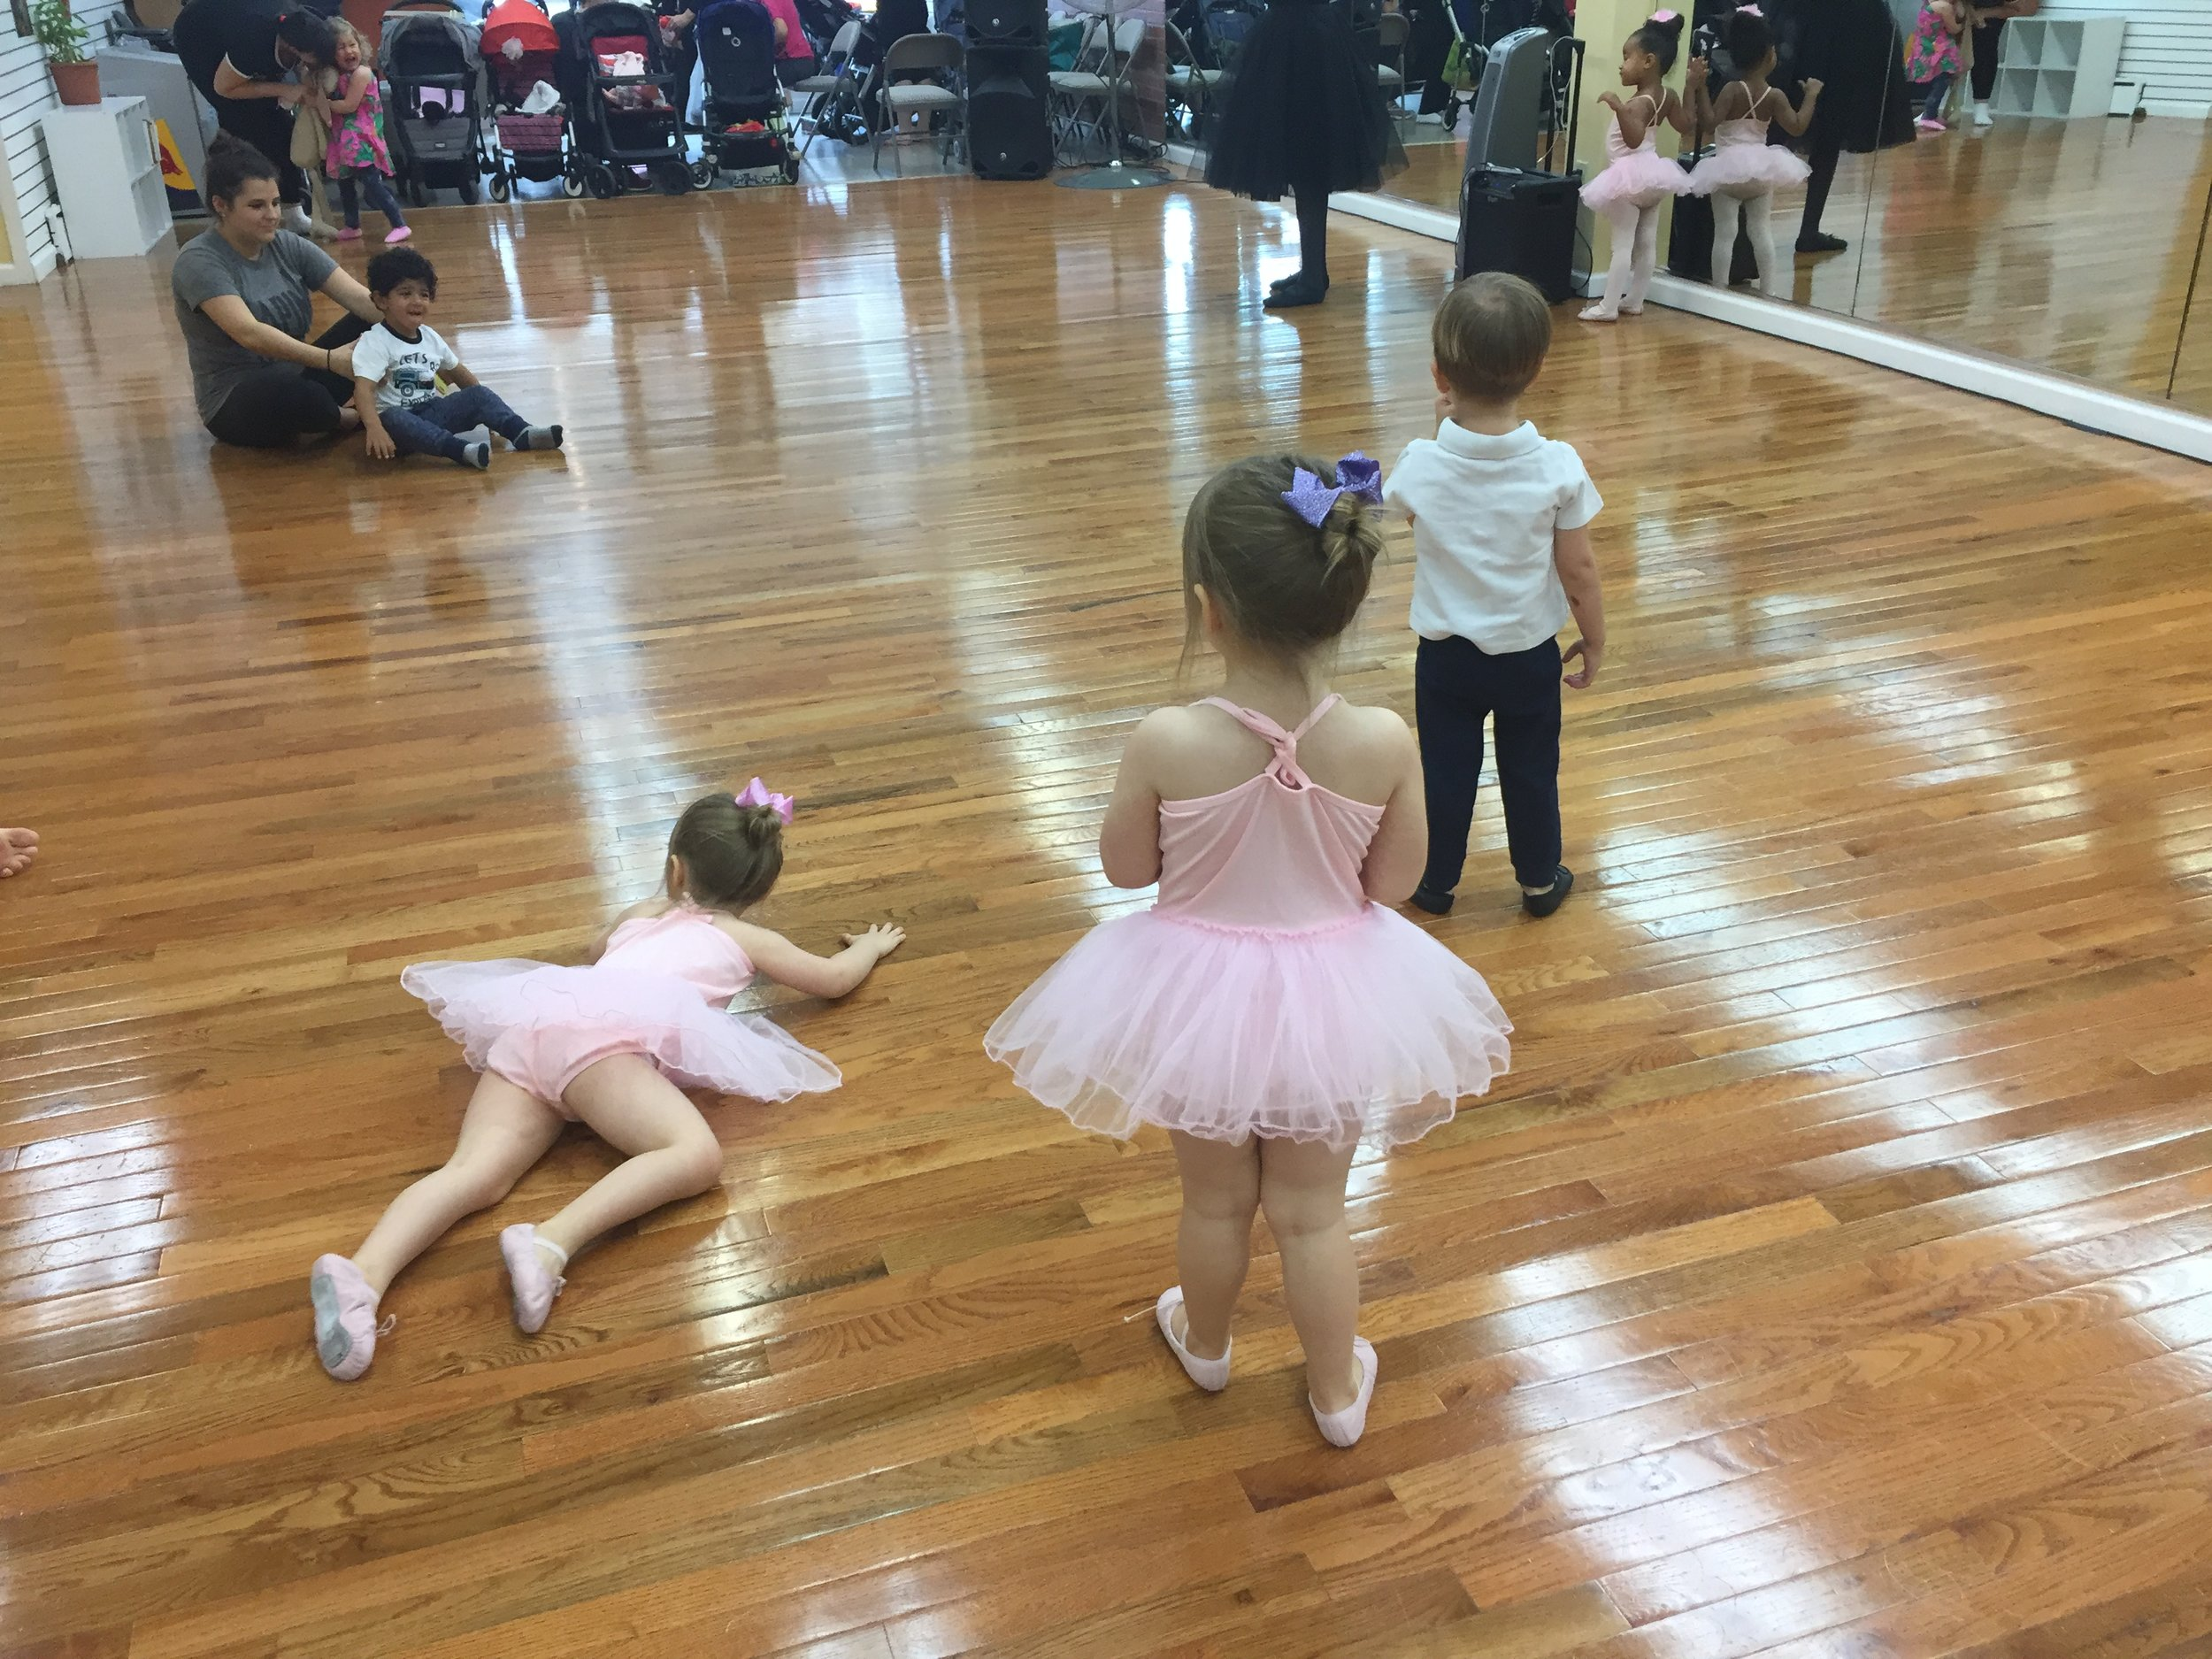 Petite Dancers relax and focus before serious dancing begins! Are you ready to Cha Cha?